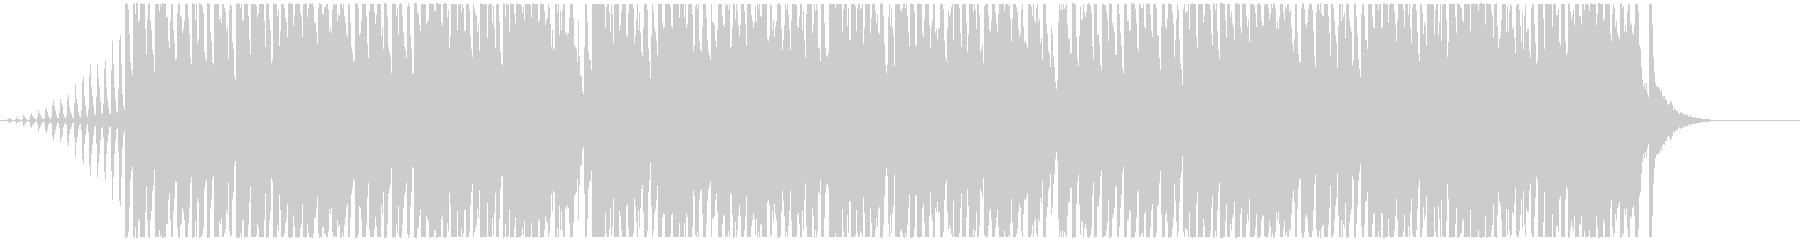 Fantastic and sparkling BGM's unreproduced waveform